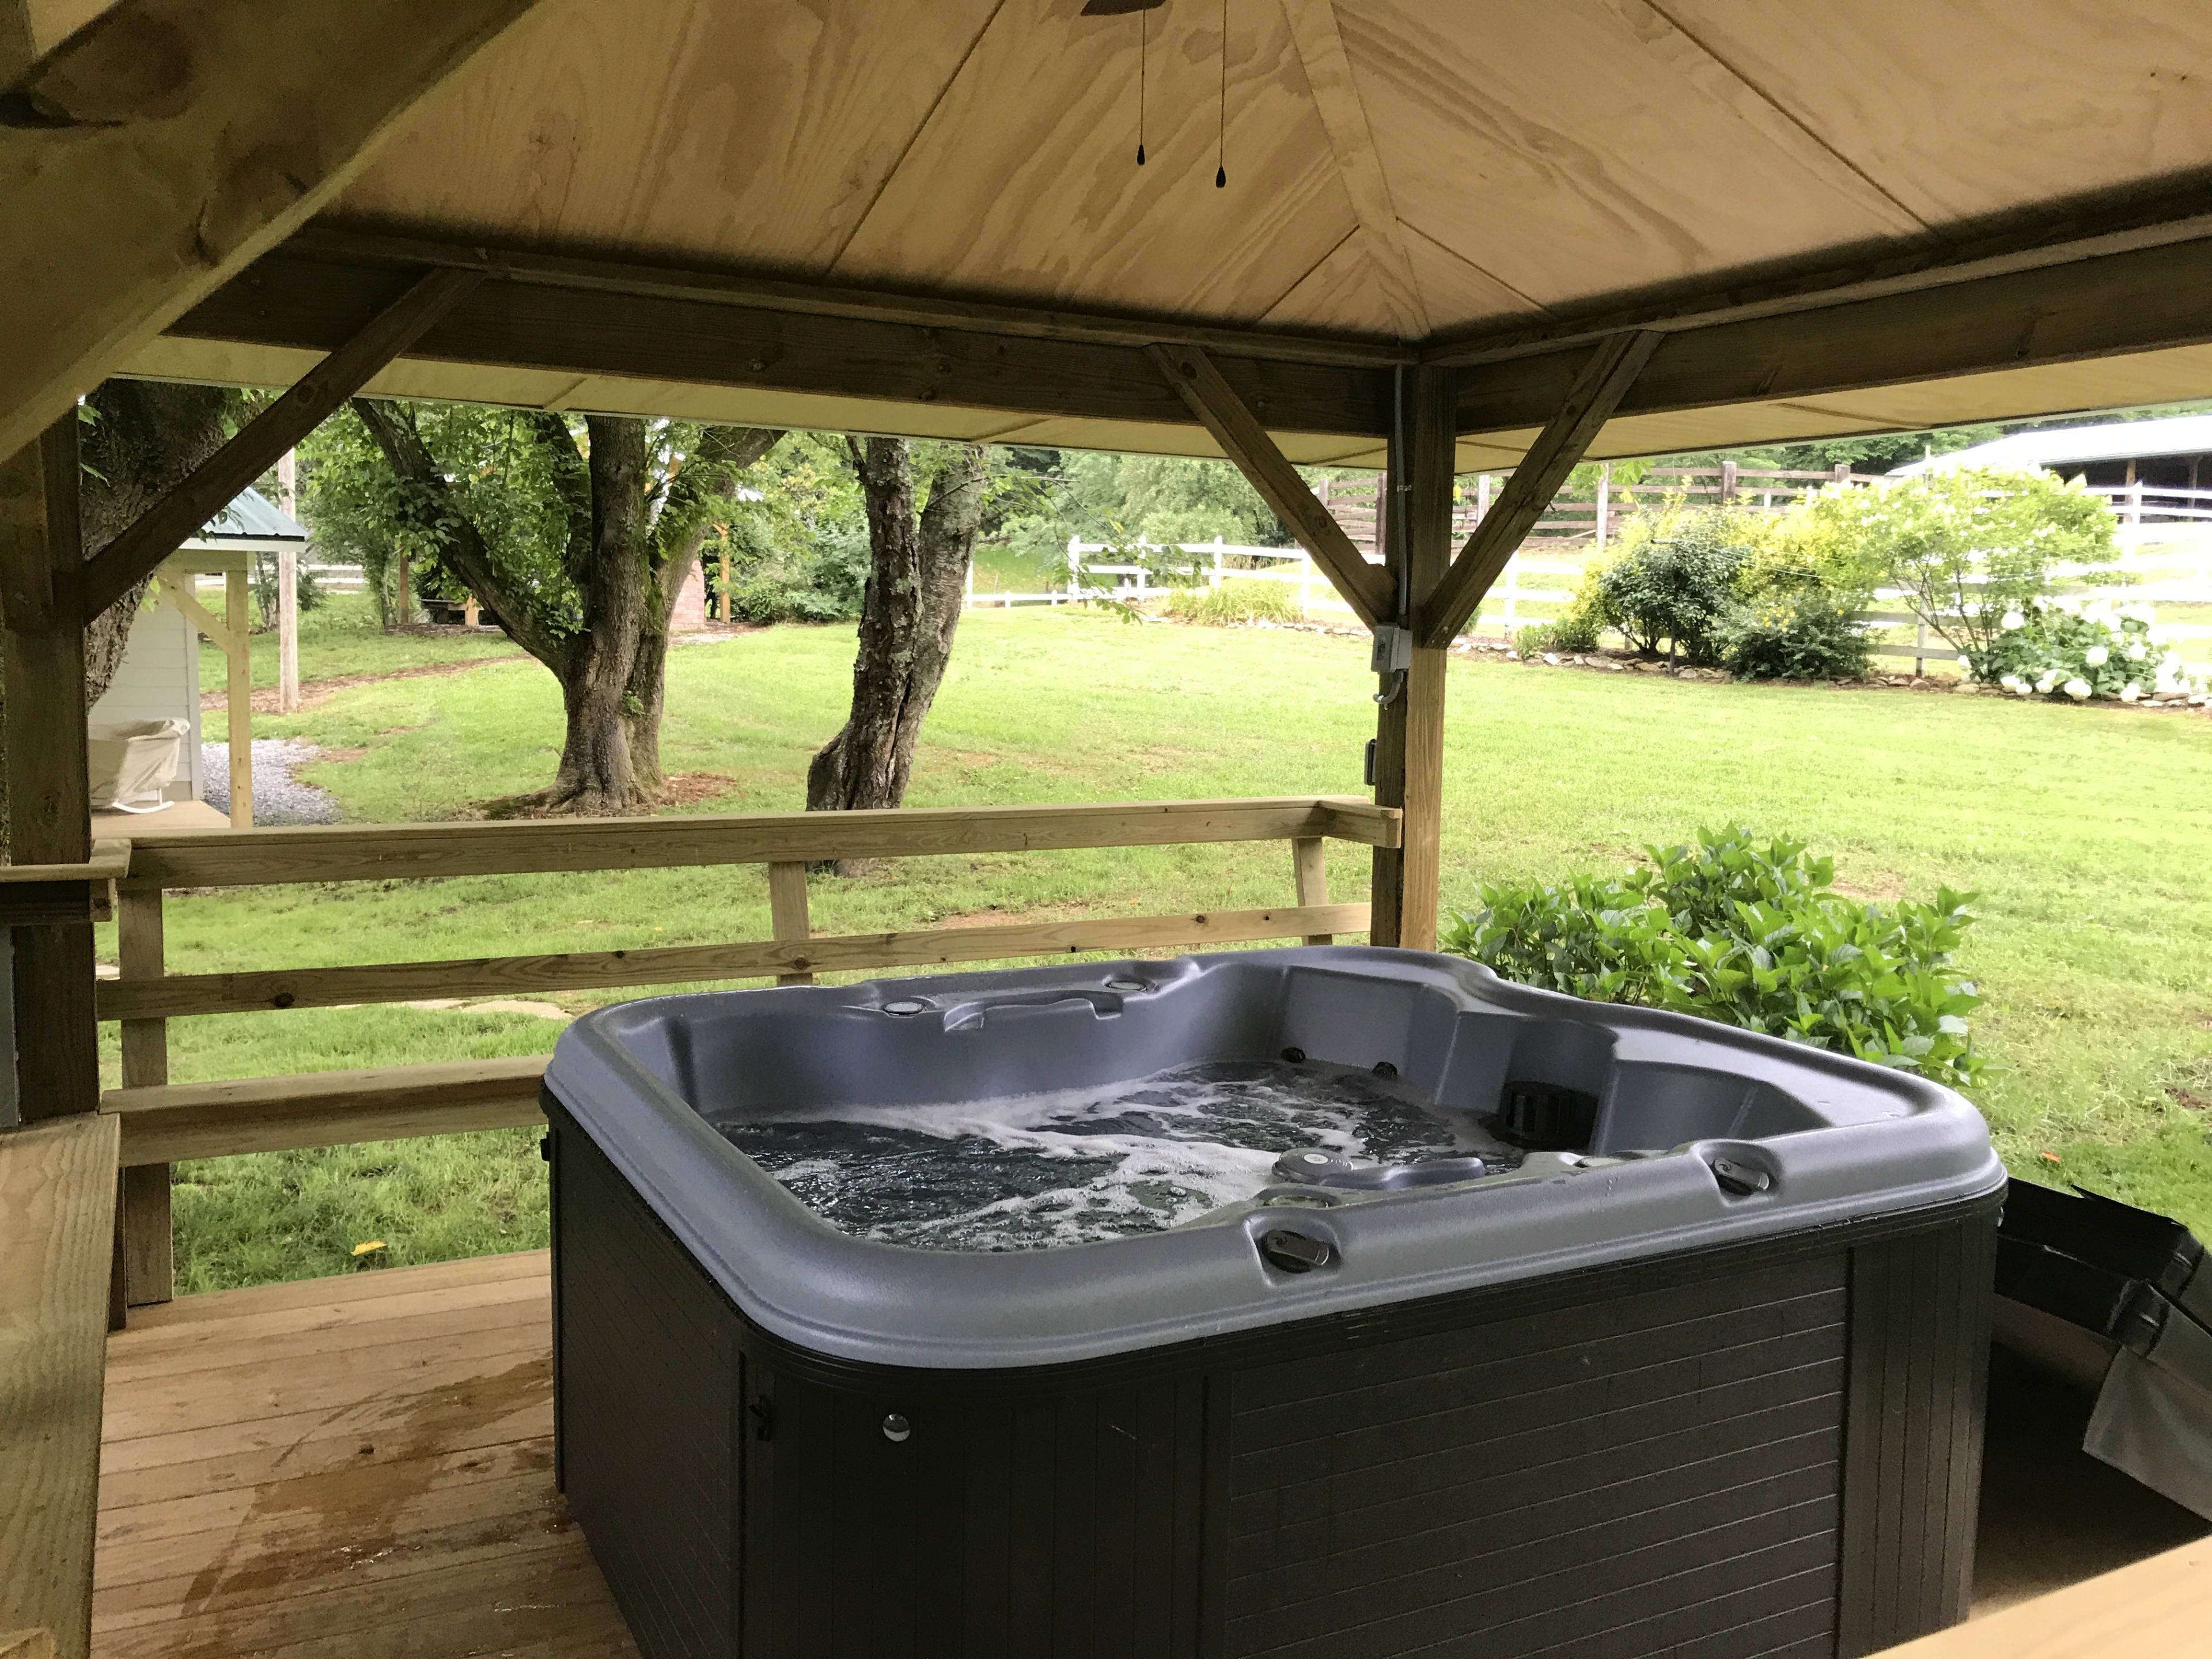 Soothe your muscles in the hot tub while reveling in the fresh air.